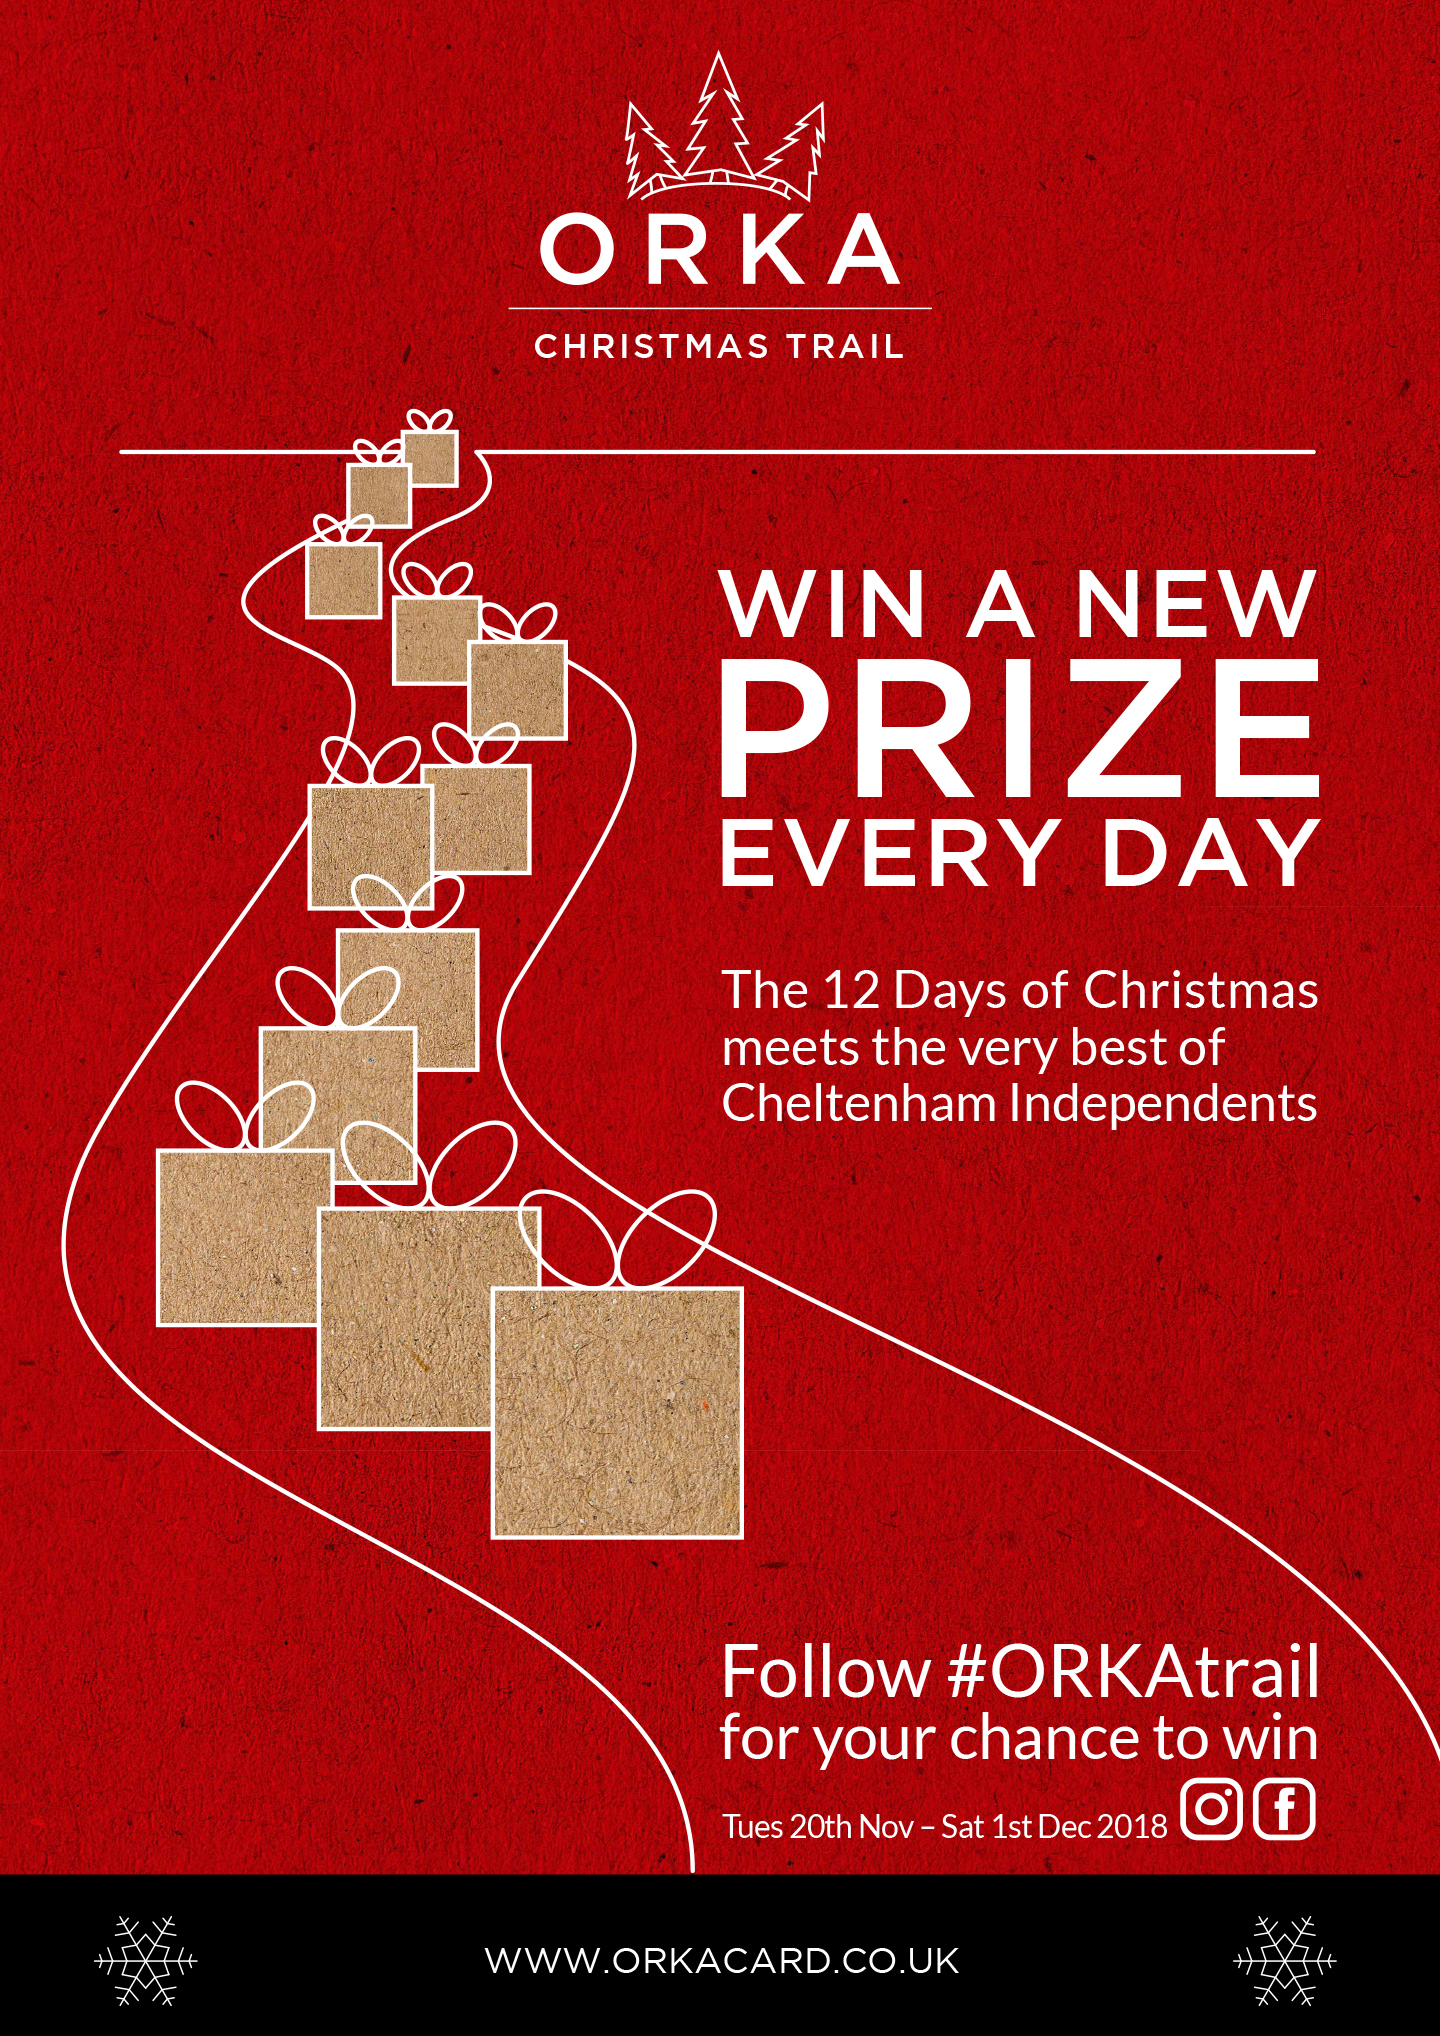 https://rusyndesign.co.uk/wp-content/uploads/2021/02/ORKA-Xmas-trail-A3-poster.jpg